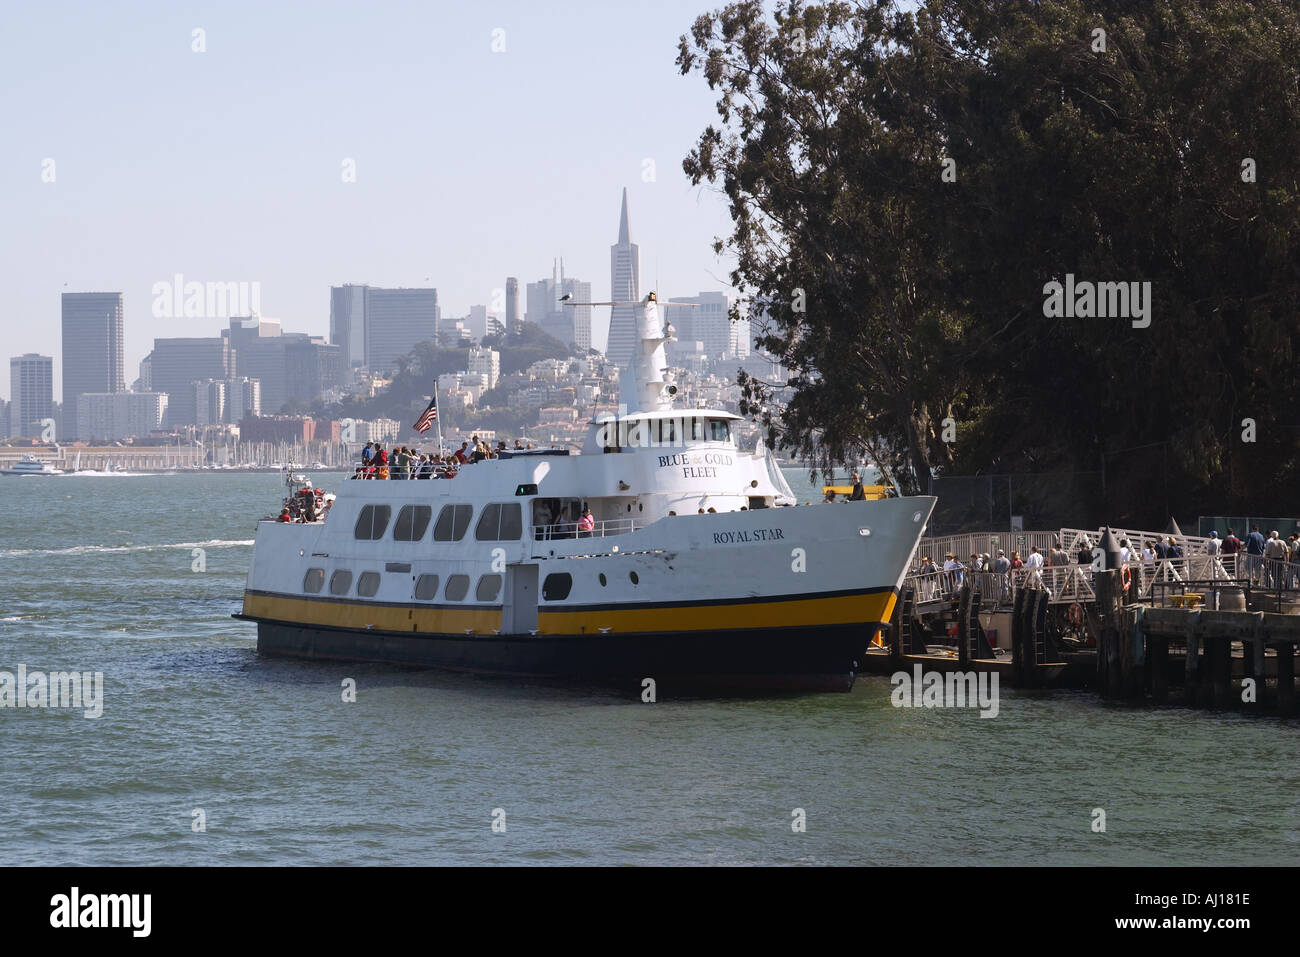 CALIFORNIA San Francisco Blue and Gold ferry boat dock at Alcatraz Island passengers go for tour of prison - Stock Image